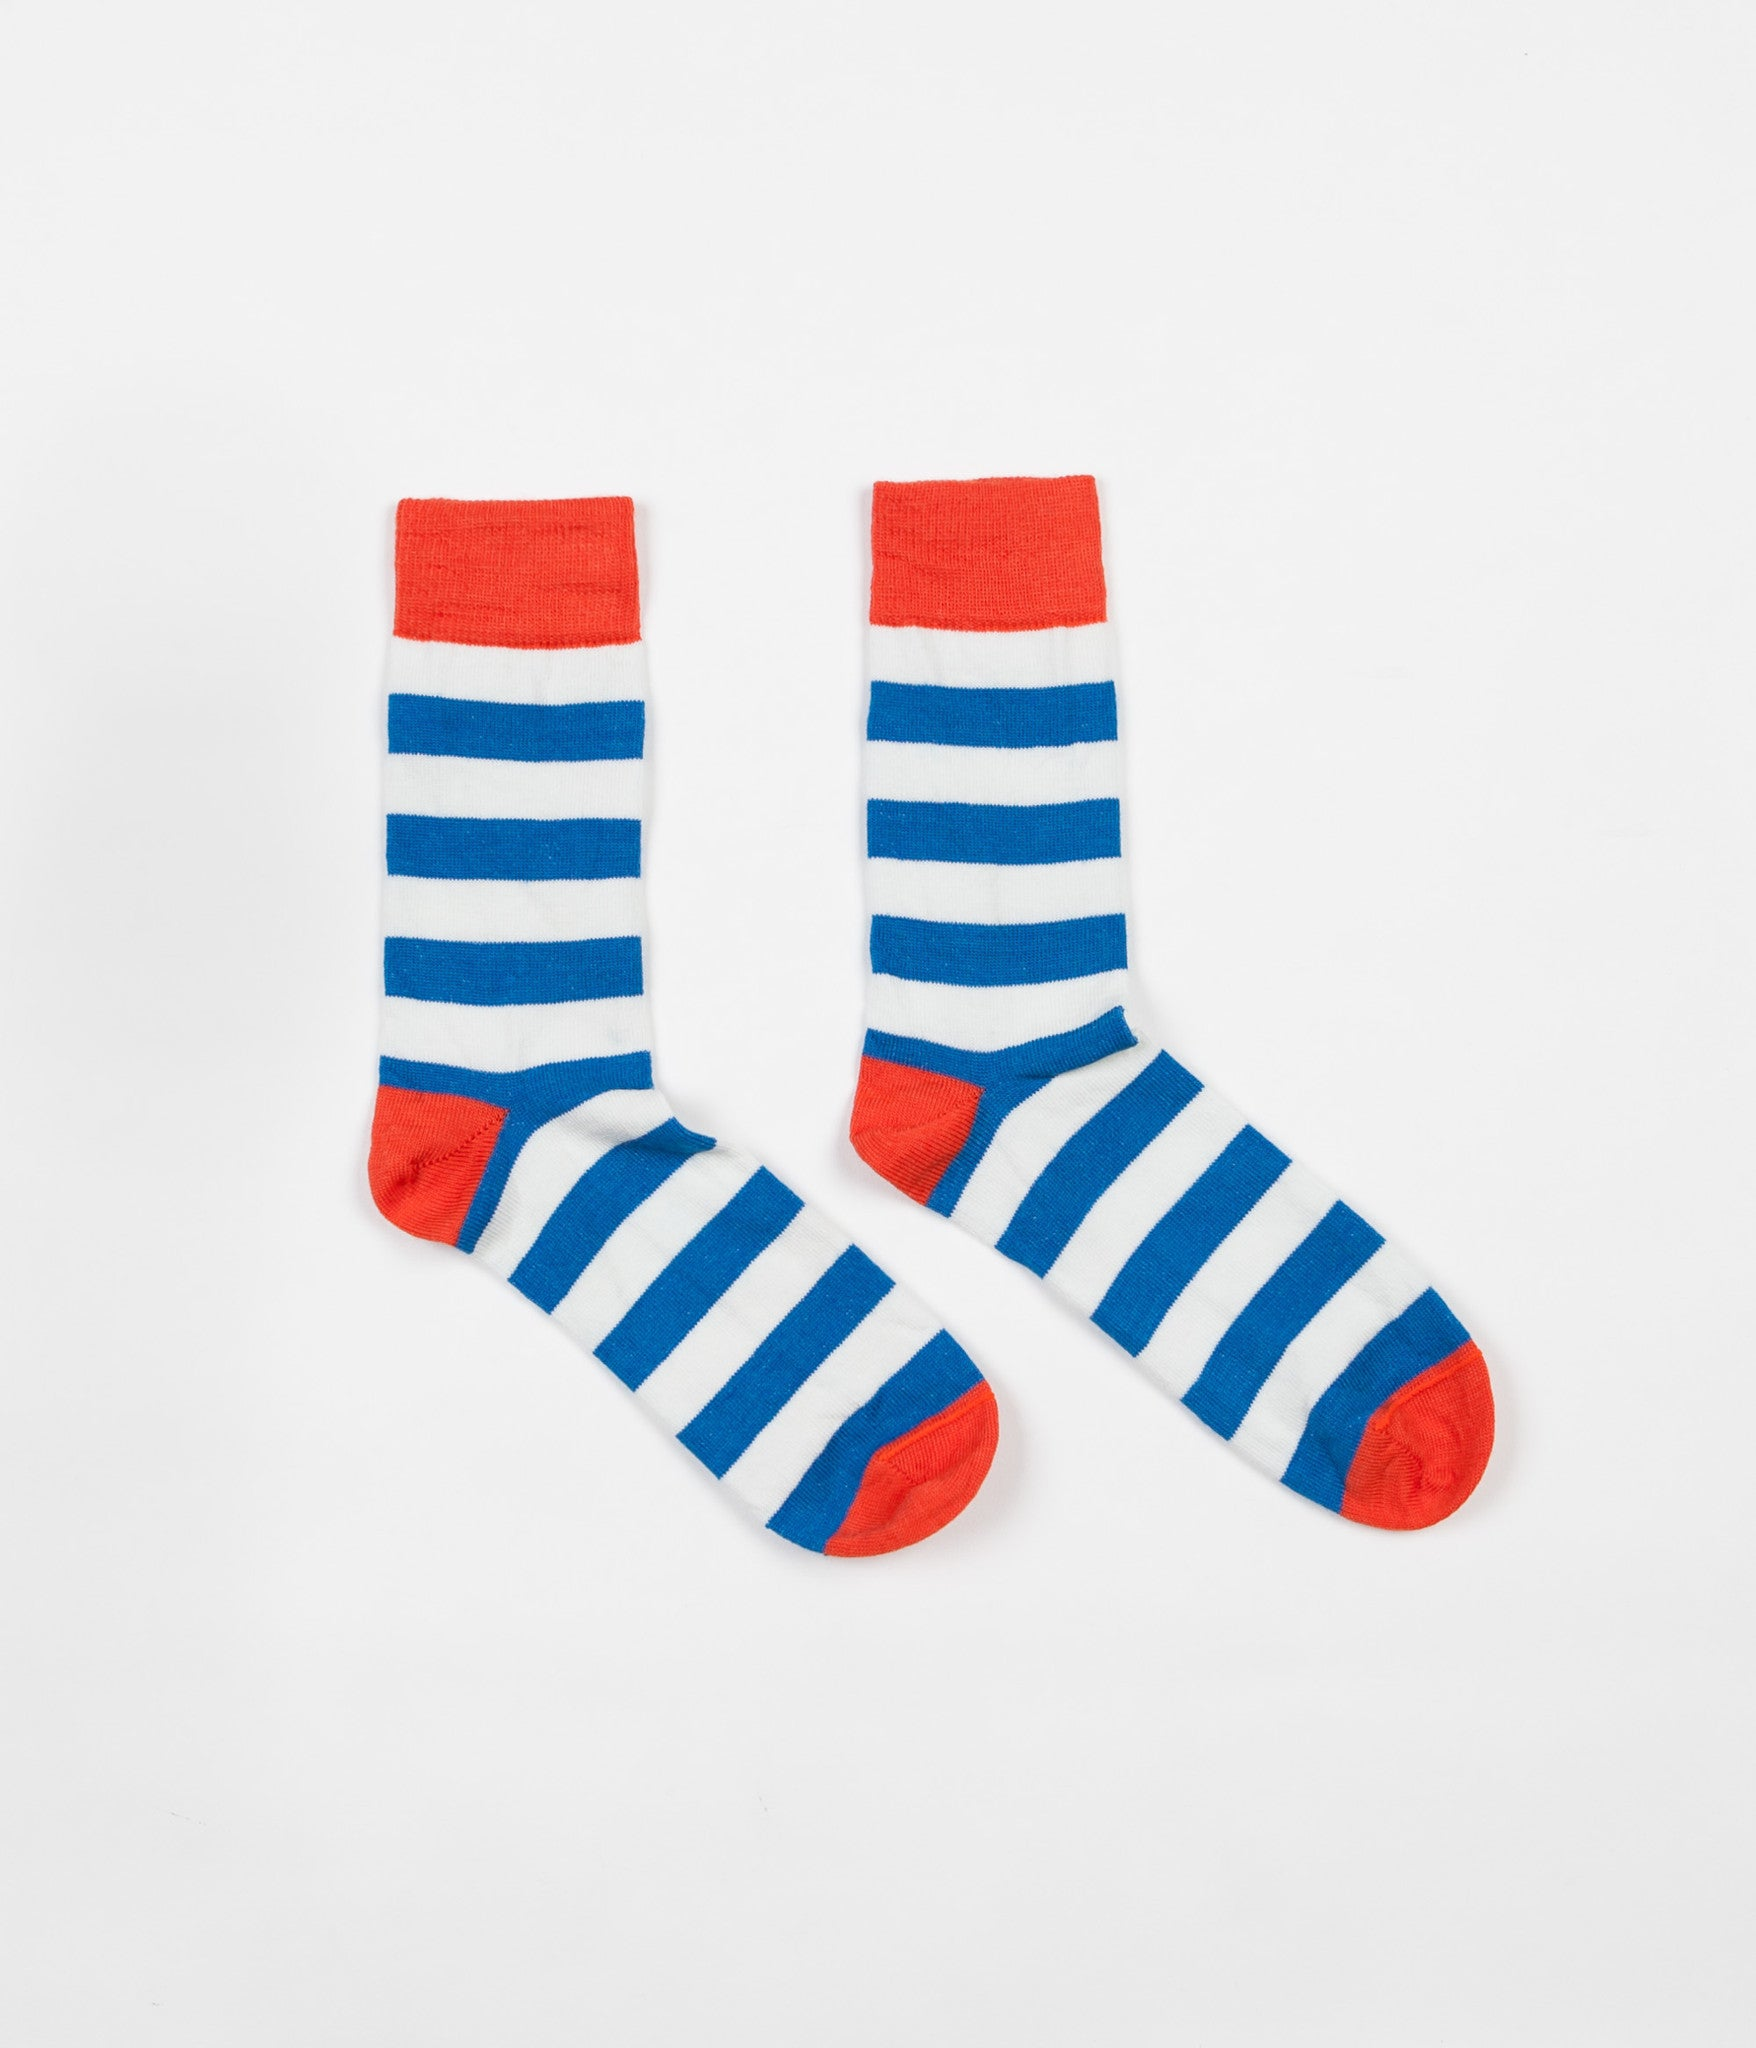 Finisterre Last Long Striped Socks - Cerulean / White / Ember